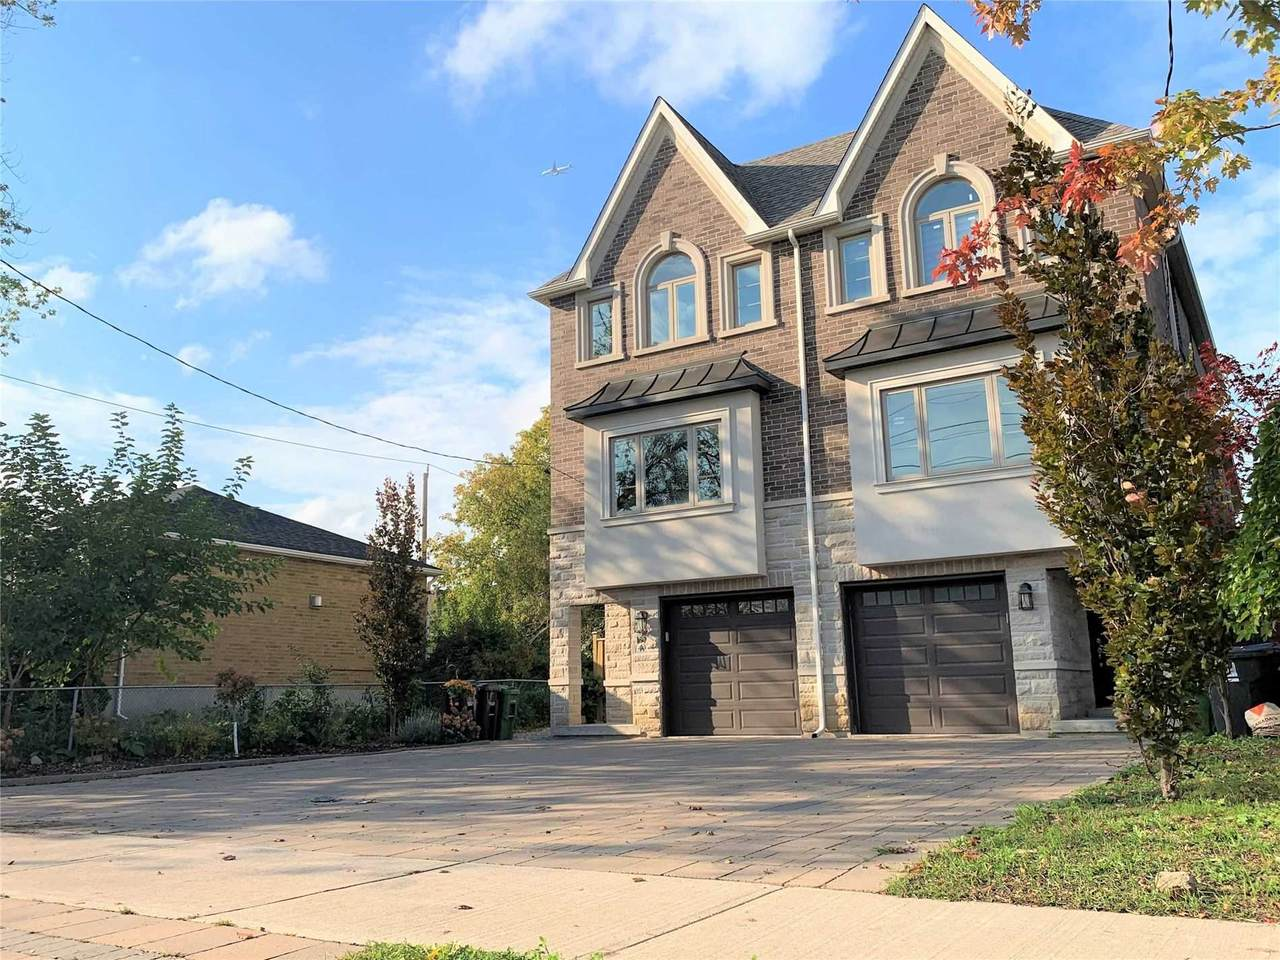 160A Finch Ave - Photo 1